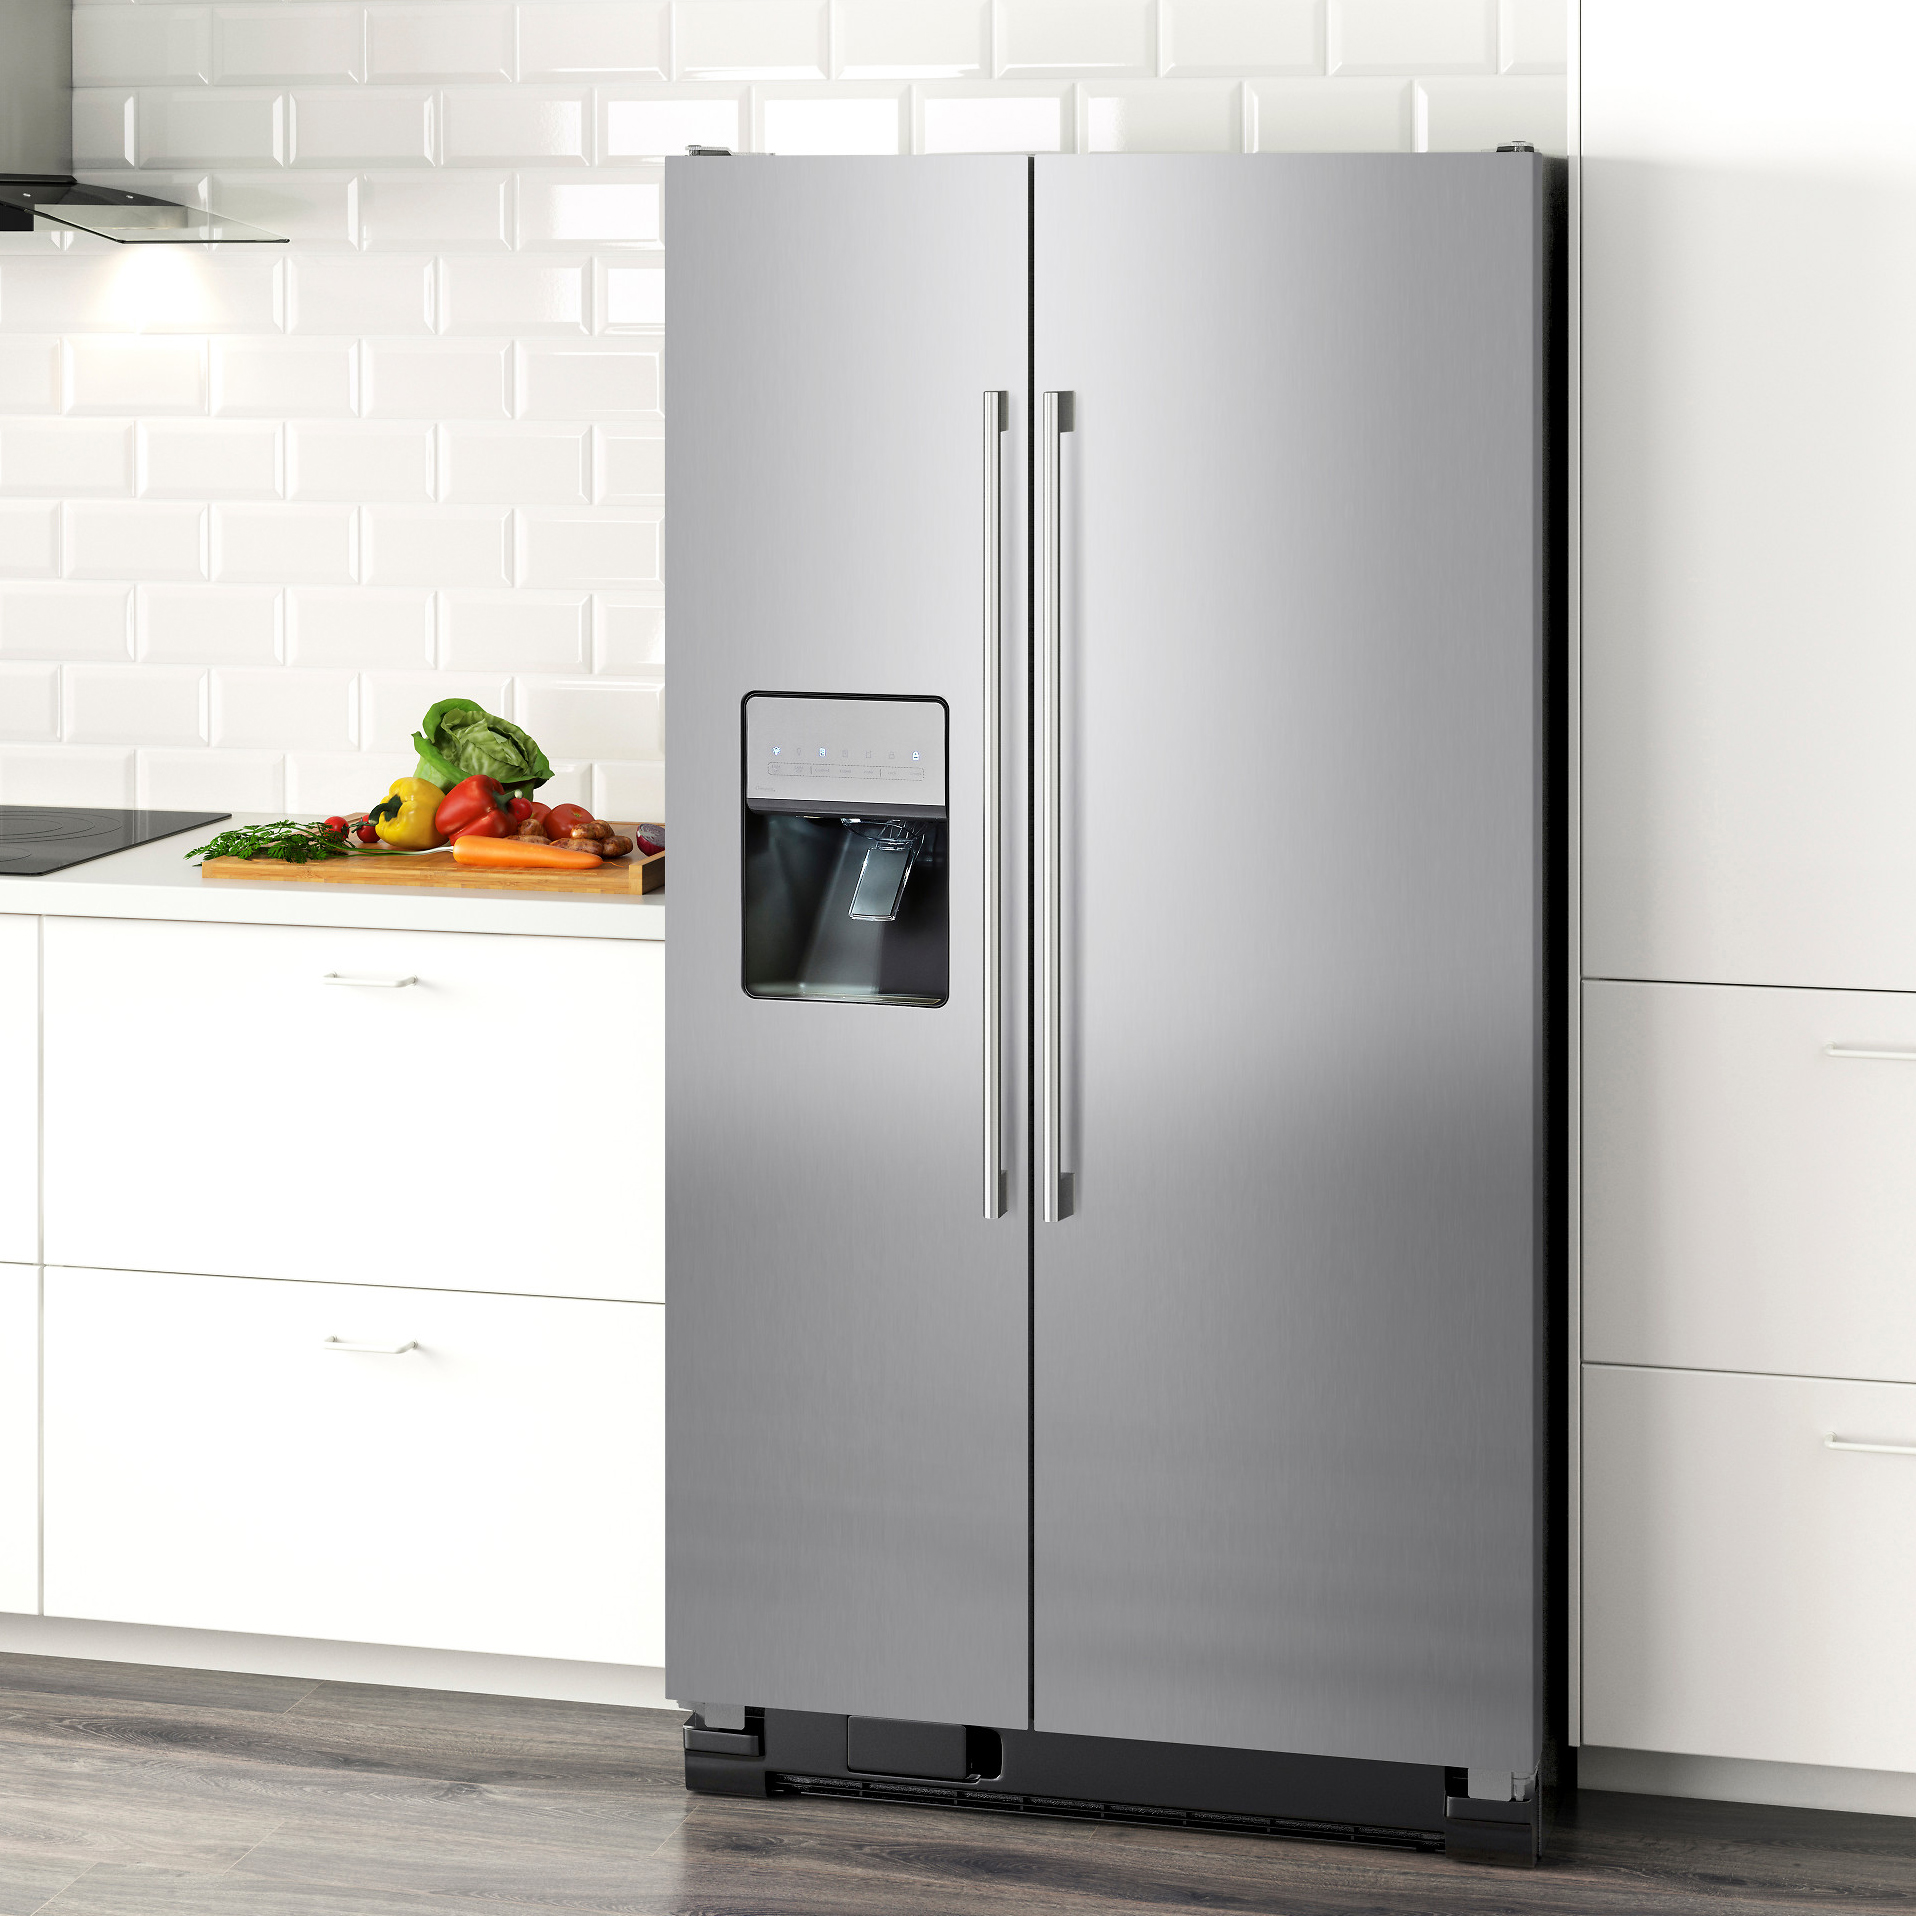 Ikea Appliances Are Their Refrigerators A Good Deal Apartment Therapy